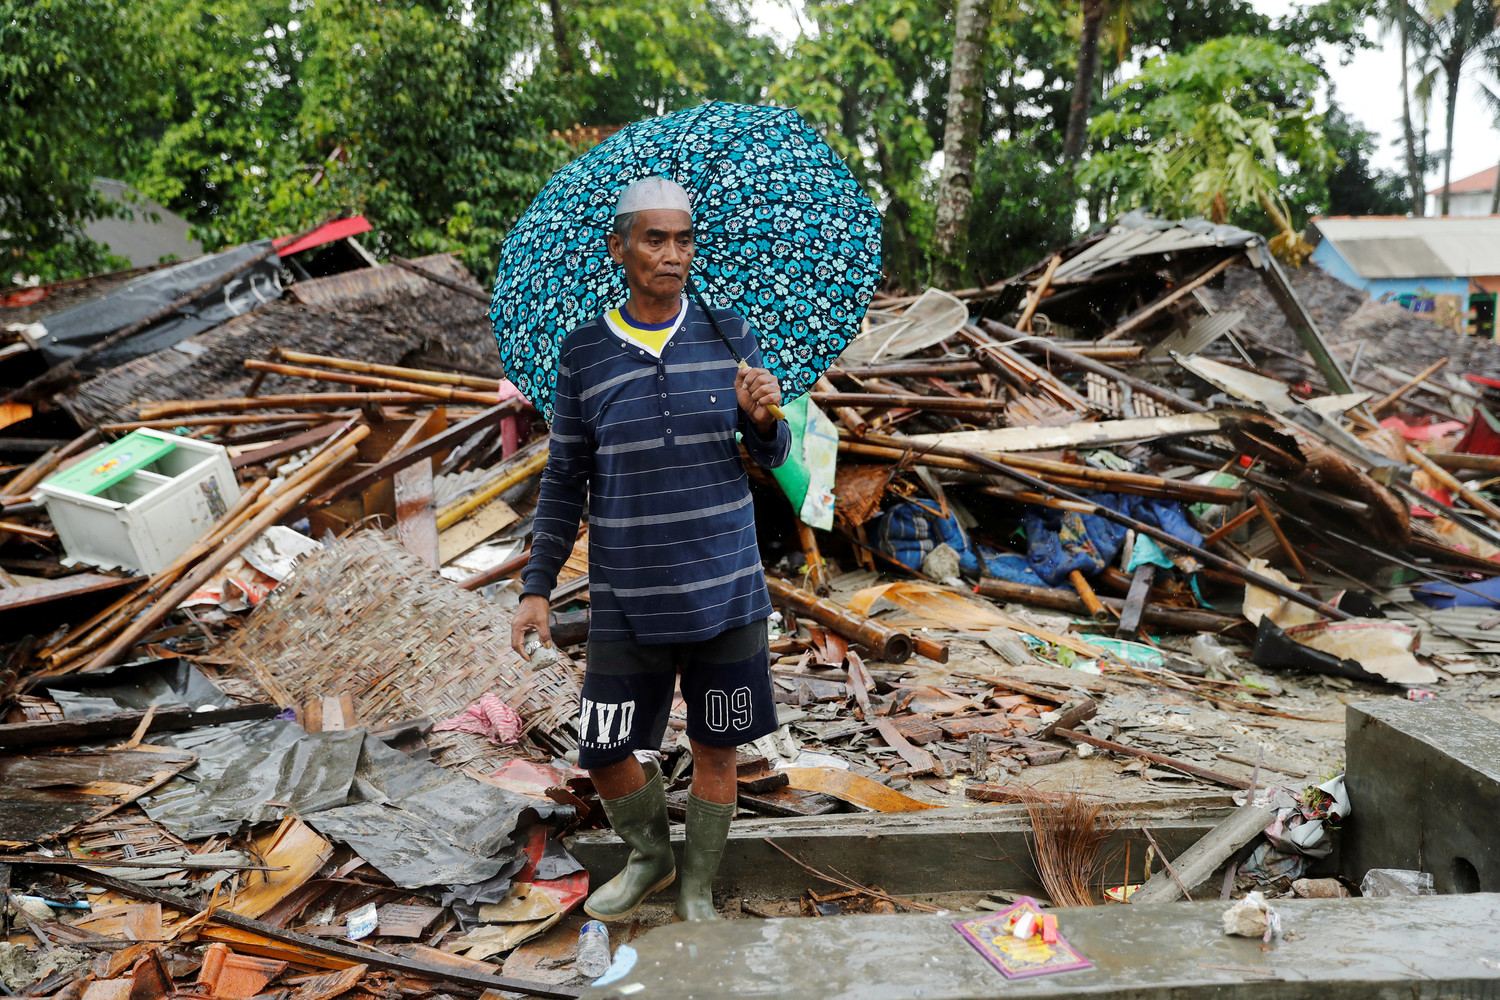 An Indonesian man walks through the debris of his destroyed house in Sumur Dec. 26 after a tsunami hit two islands. Indonesian authorities asked people to avoid the coast in areas where the tsunami killed more than 400 people.